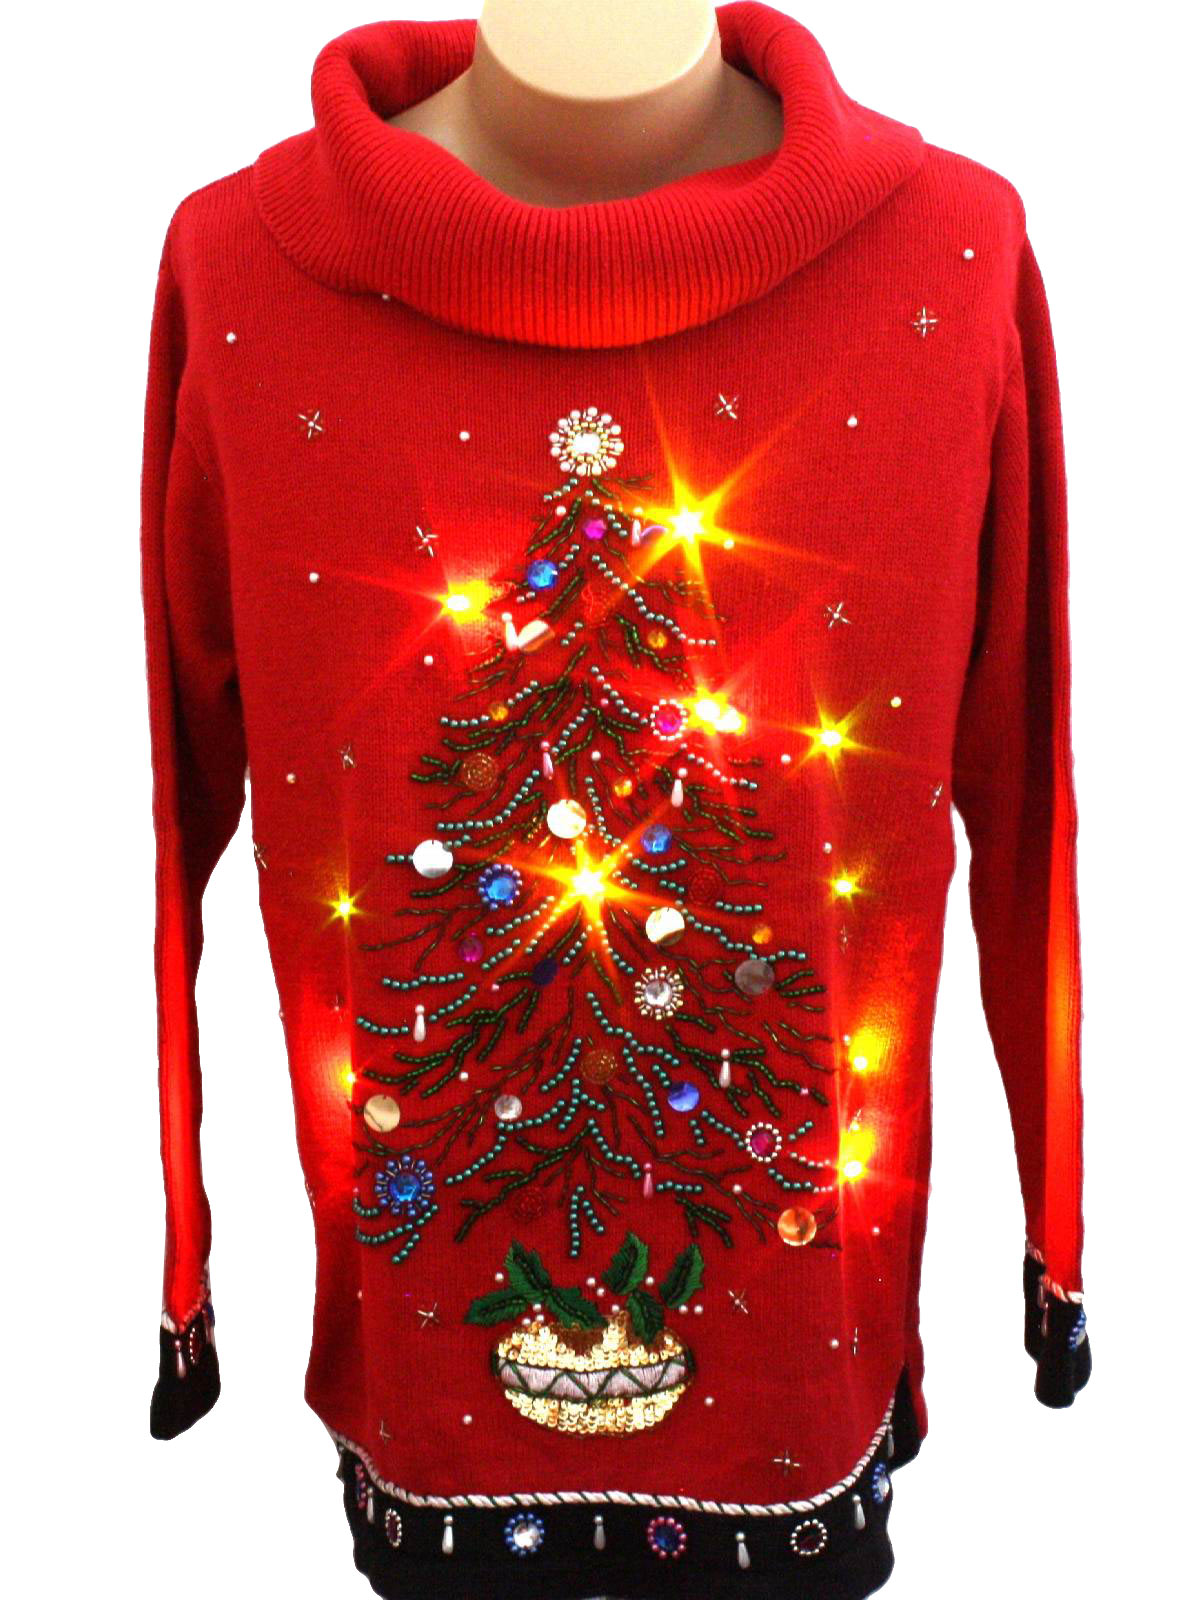 Womens Multicolor Lightup Ugly Christmas Sweater Vest-Designer Originals Studio- Womens black background cotton ramie blend button front Ugly Christmas Multicolor Flashing Lightup (10 super bright removeable MULTICOLOR Flashing or Solid lit dual mode LED lights powered by included L4 watch Batteries) Sweater Vest with veed neckline.